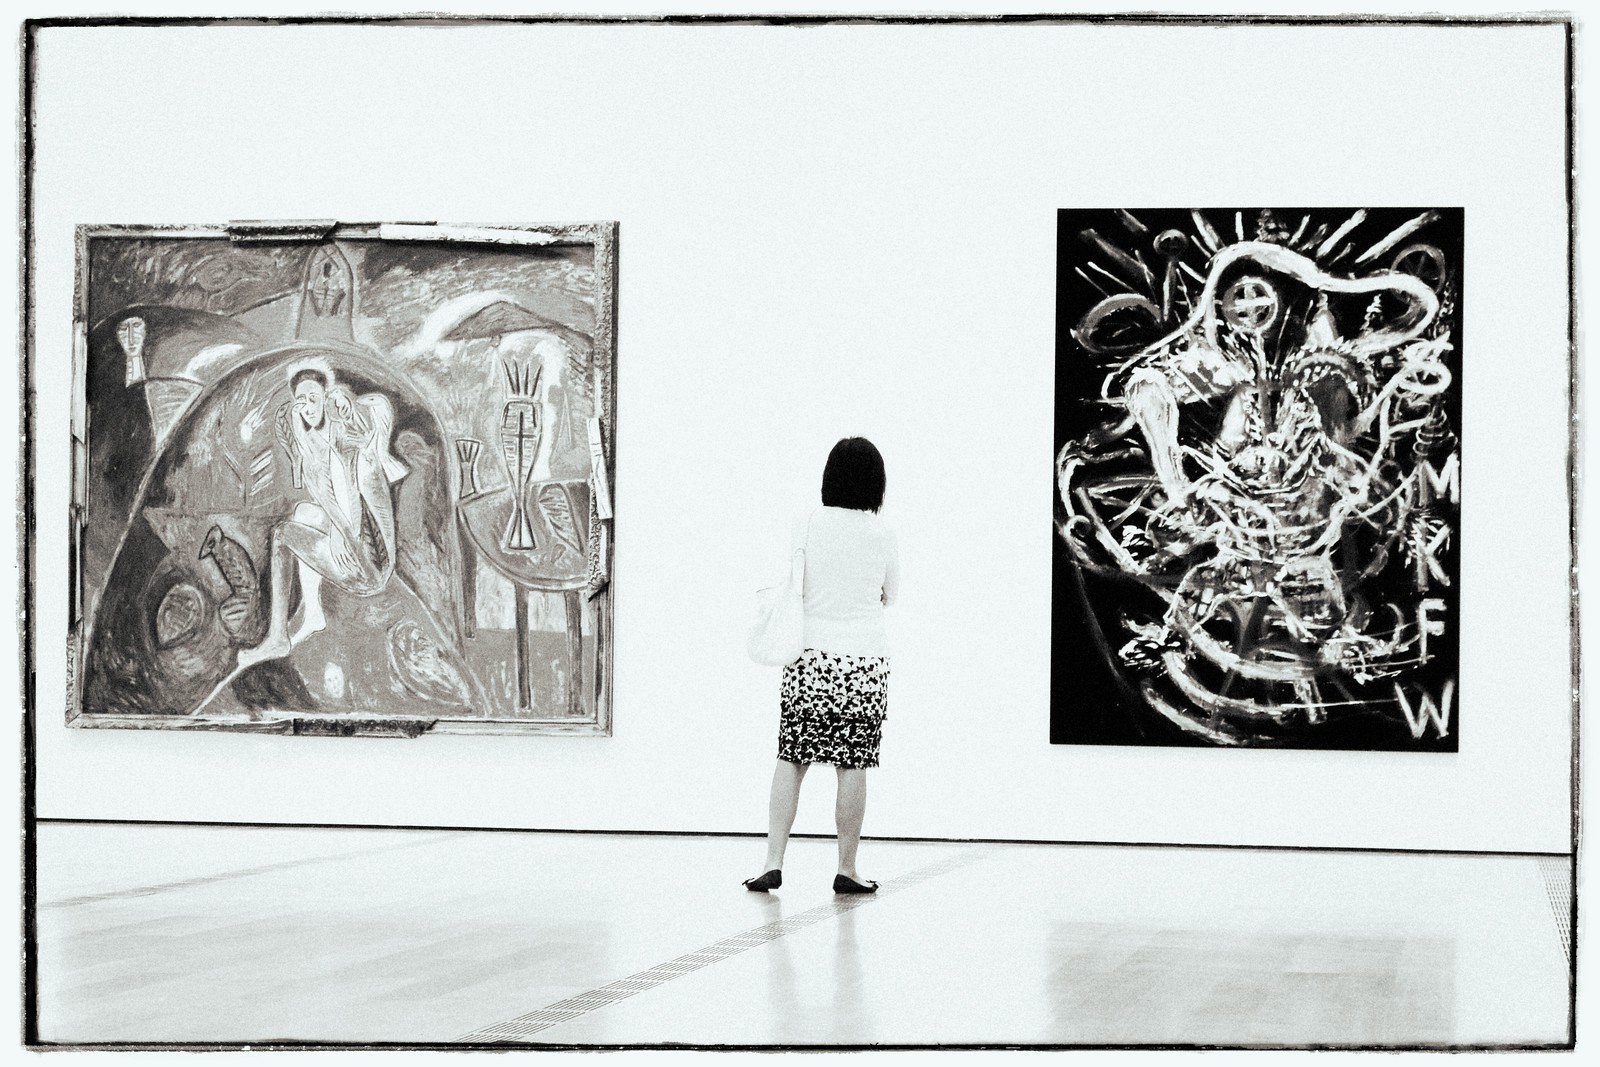 Woman in Black and White Skirt Viewing Art, High Museum, 2015